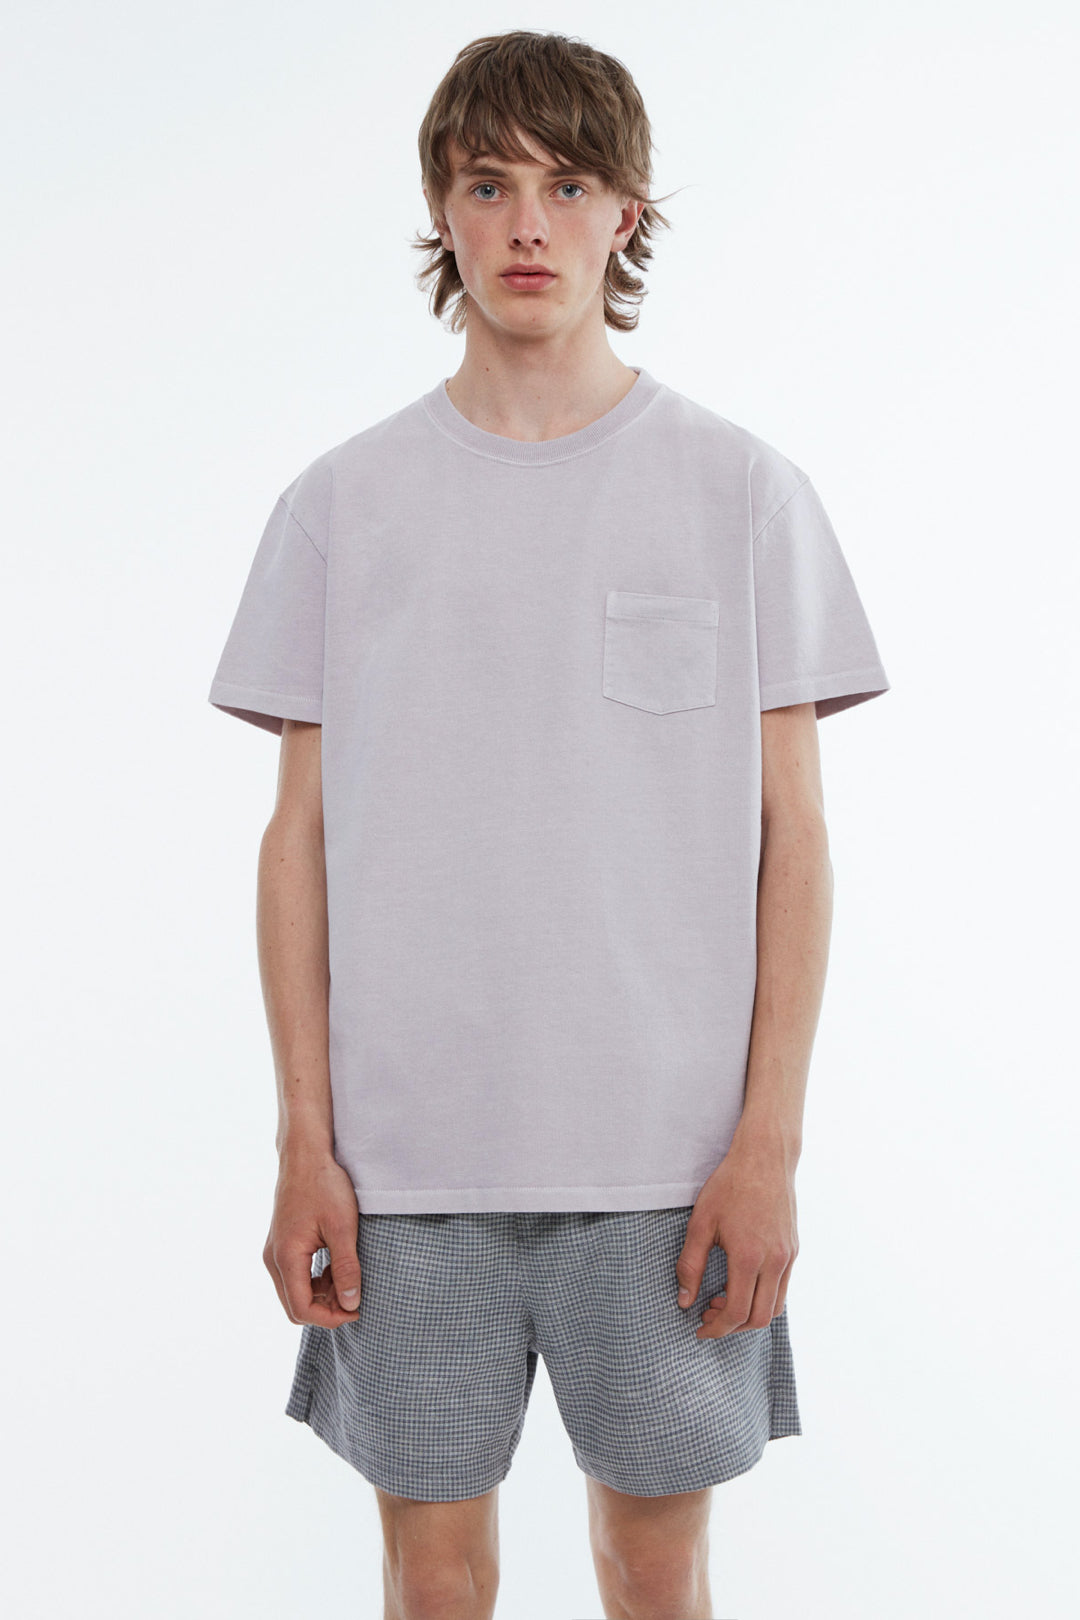 T-shirt jersey garment dyed dusty purple